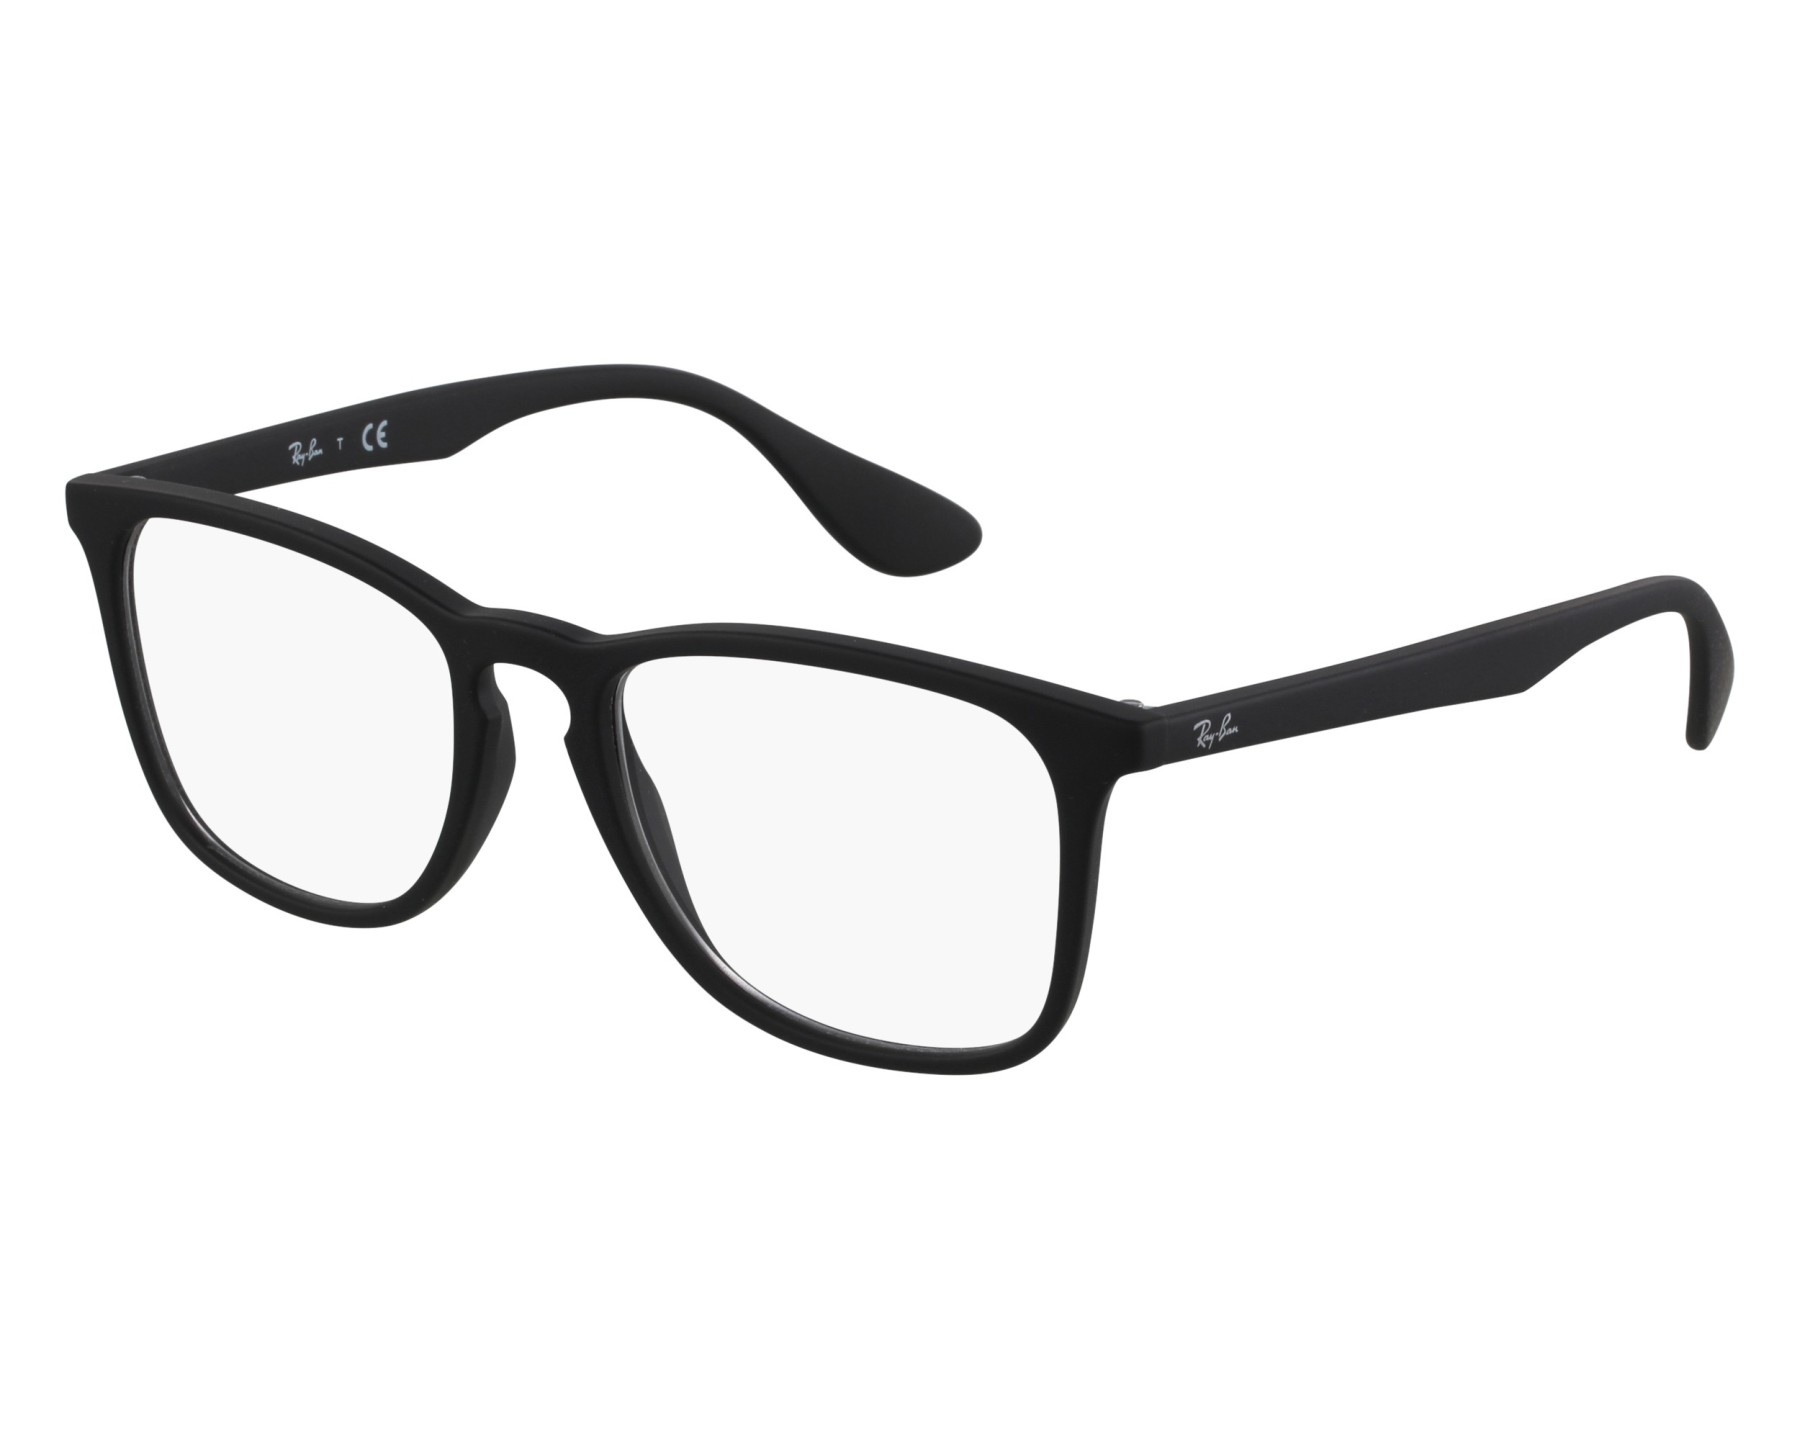 7b44d700328 eyeglasses Ray-Ban RX-7074 5364 52-18 Black front view